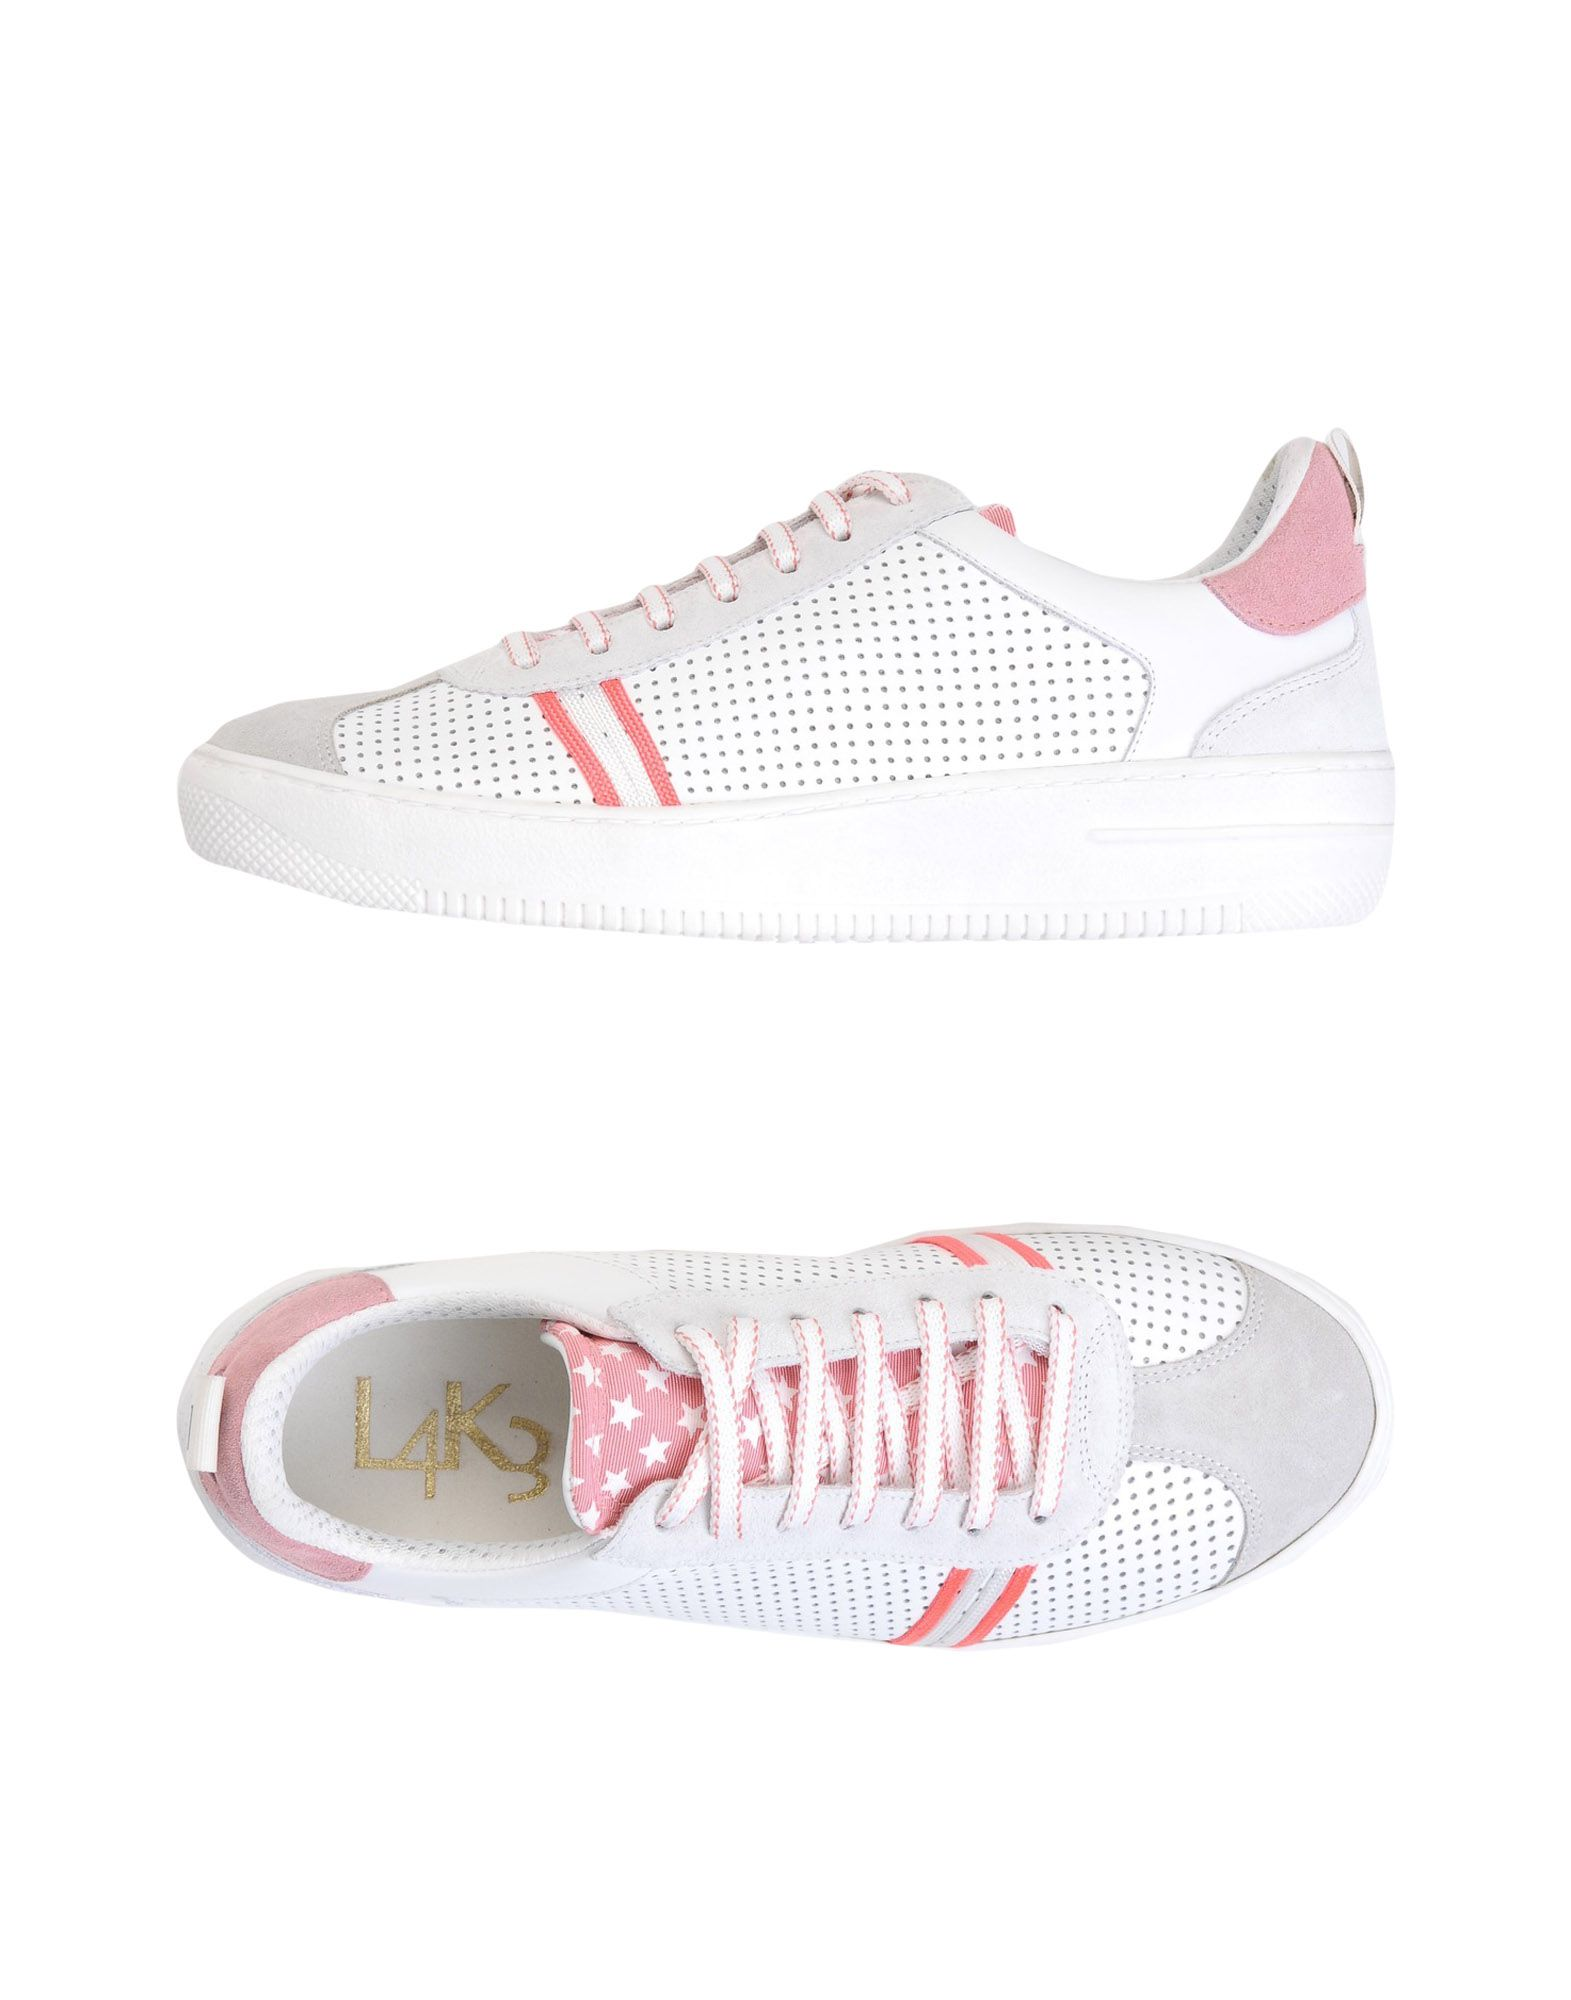 Sneakers L4k3 Storm - Donna - Acquista online su